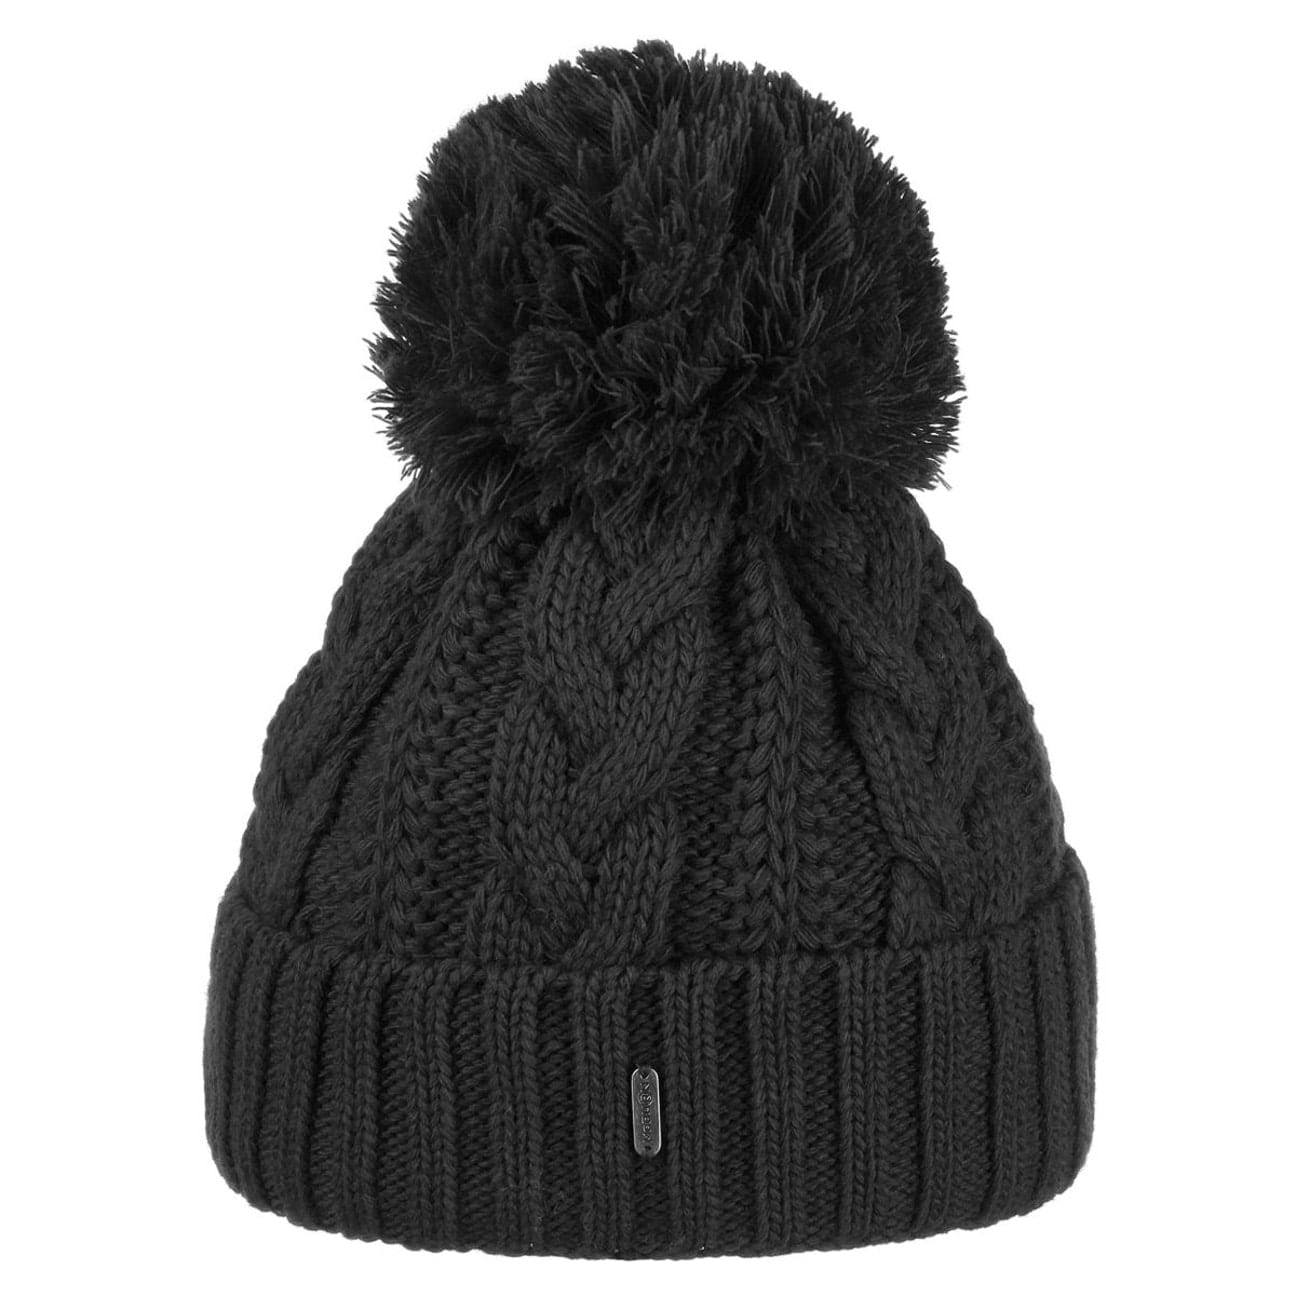 ... Giant Bobble Hat by McBURN - black 1 ... eede414619f